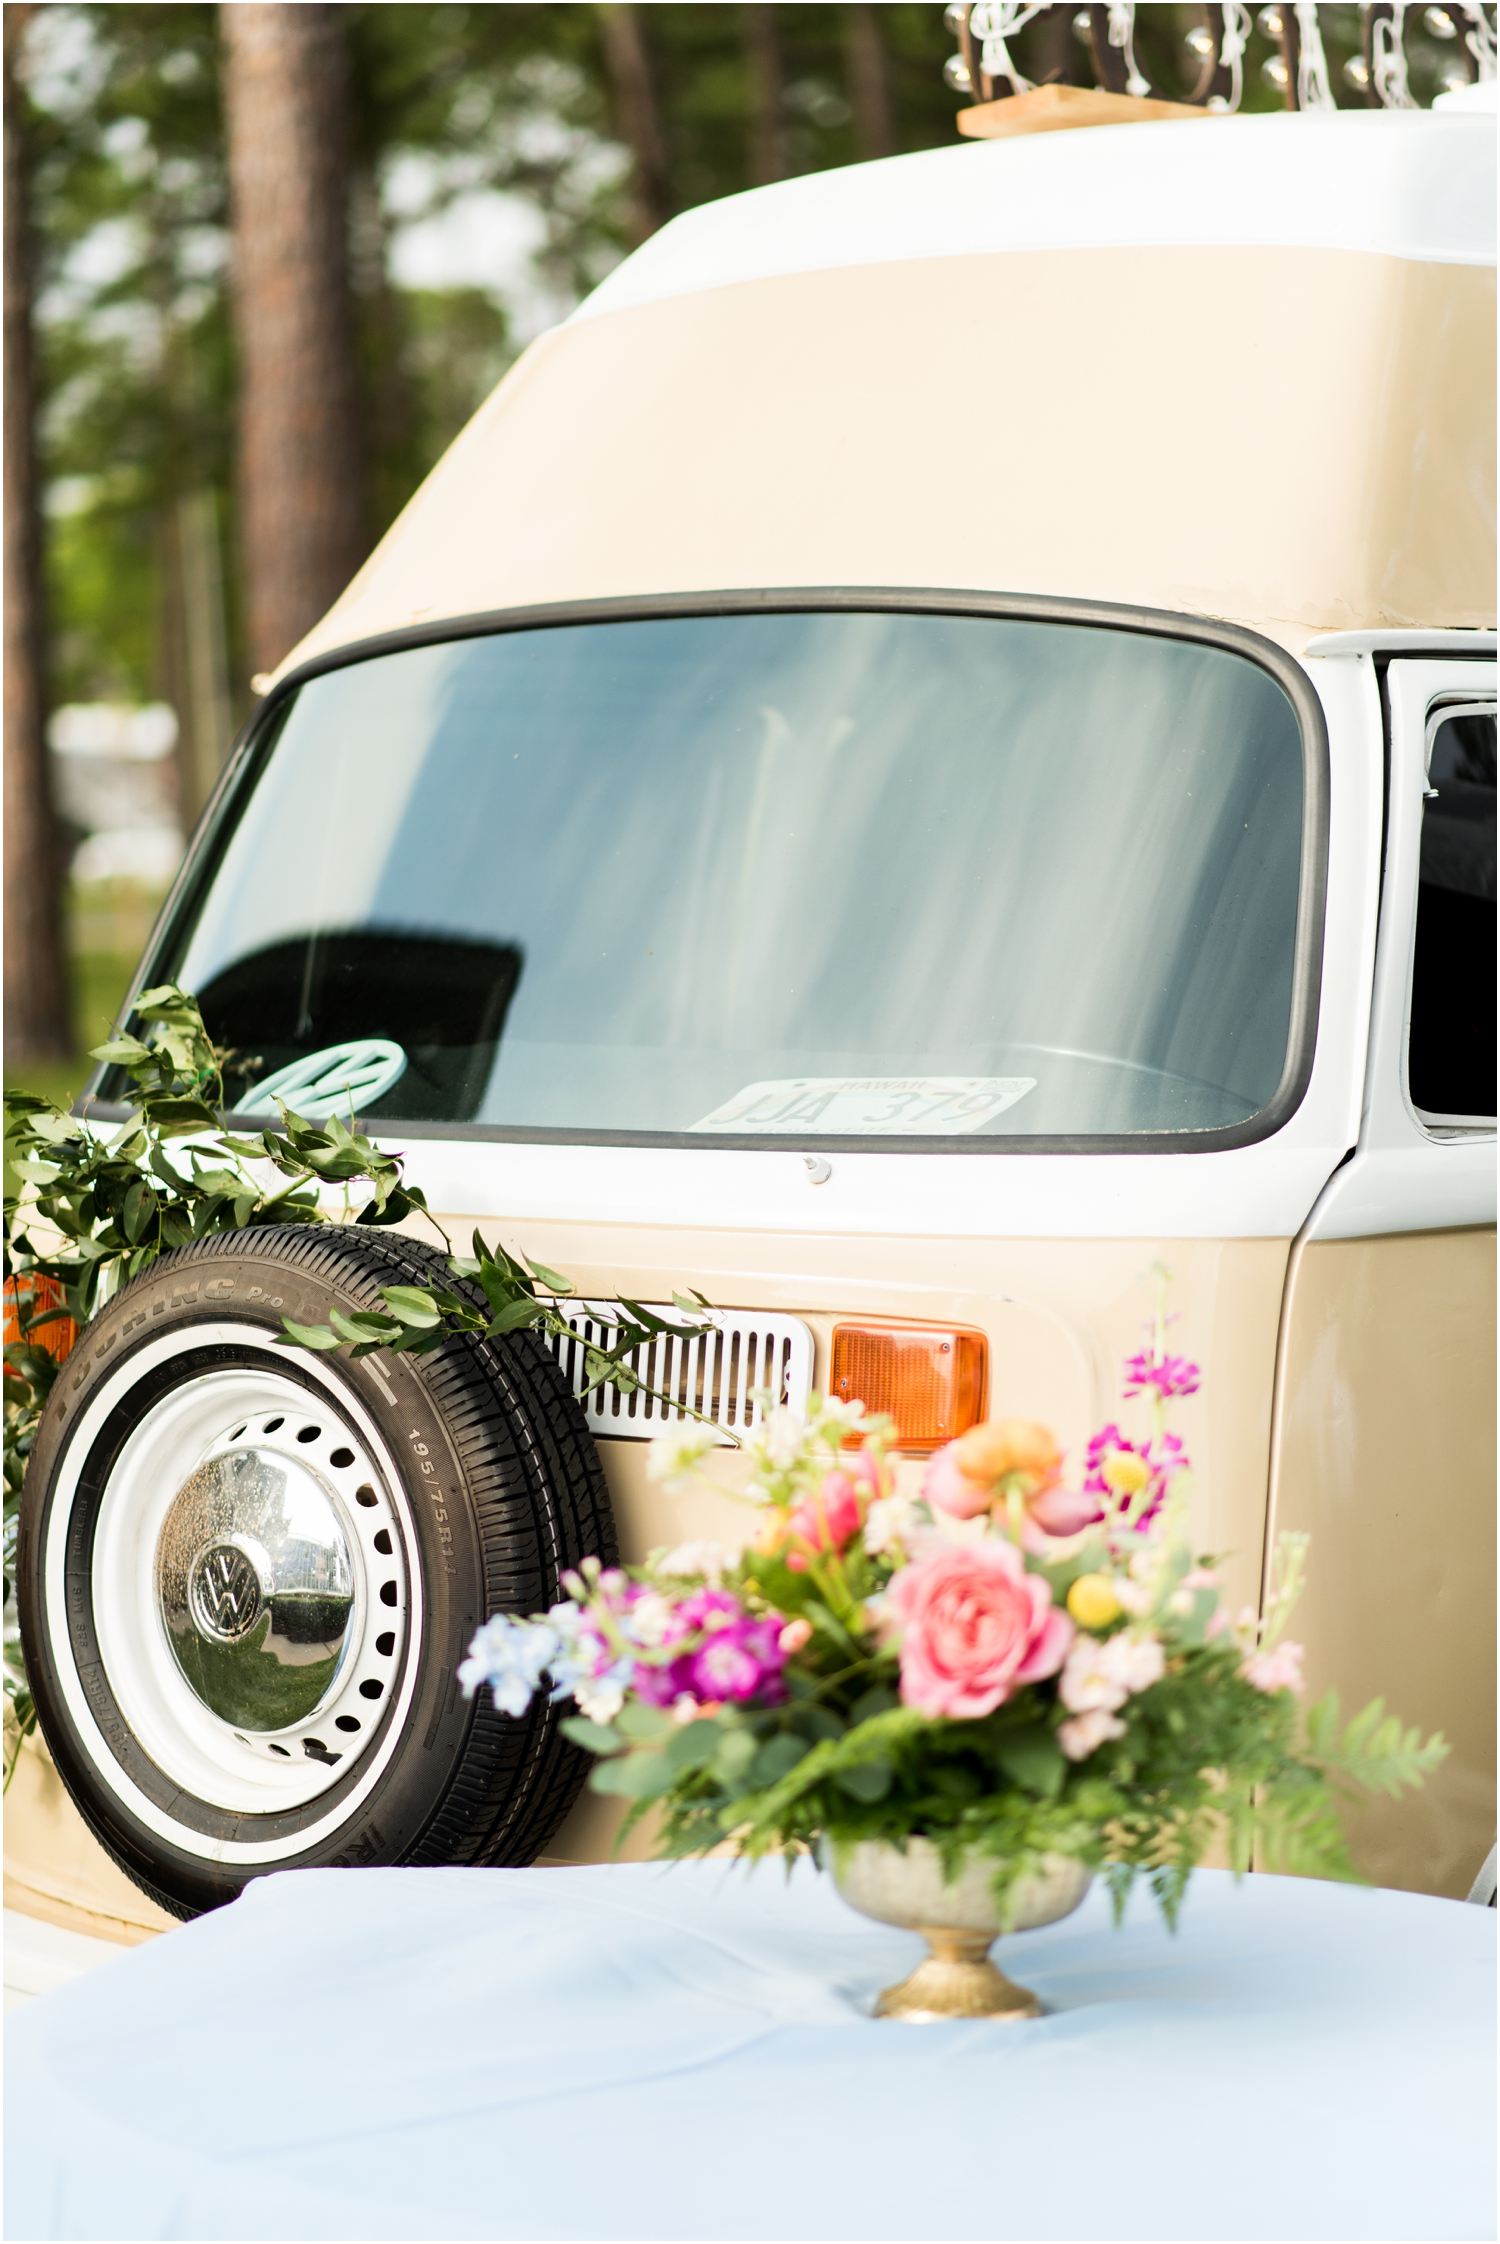 Gulf Shores Orange Beach Alabama Family Home on the Water Wedding Photographer reception details supposey posey bus photo booth